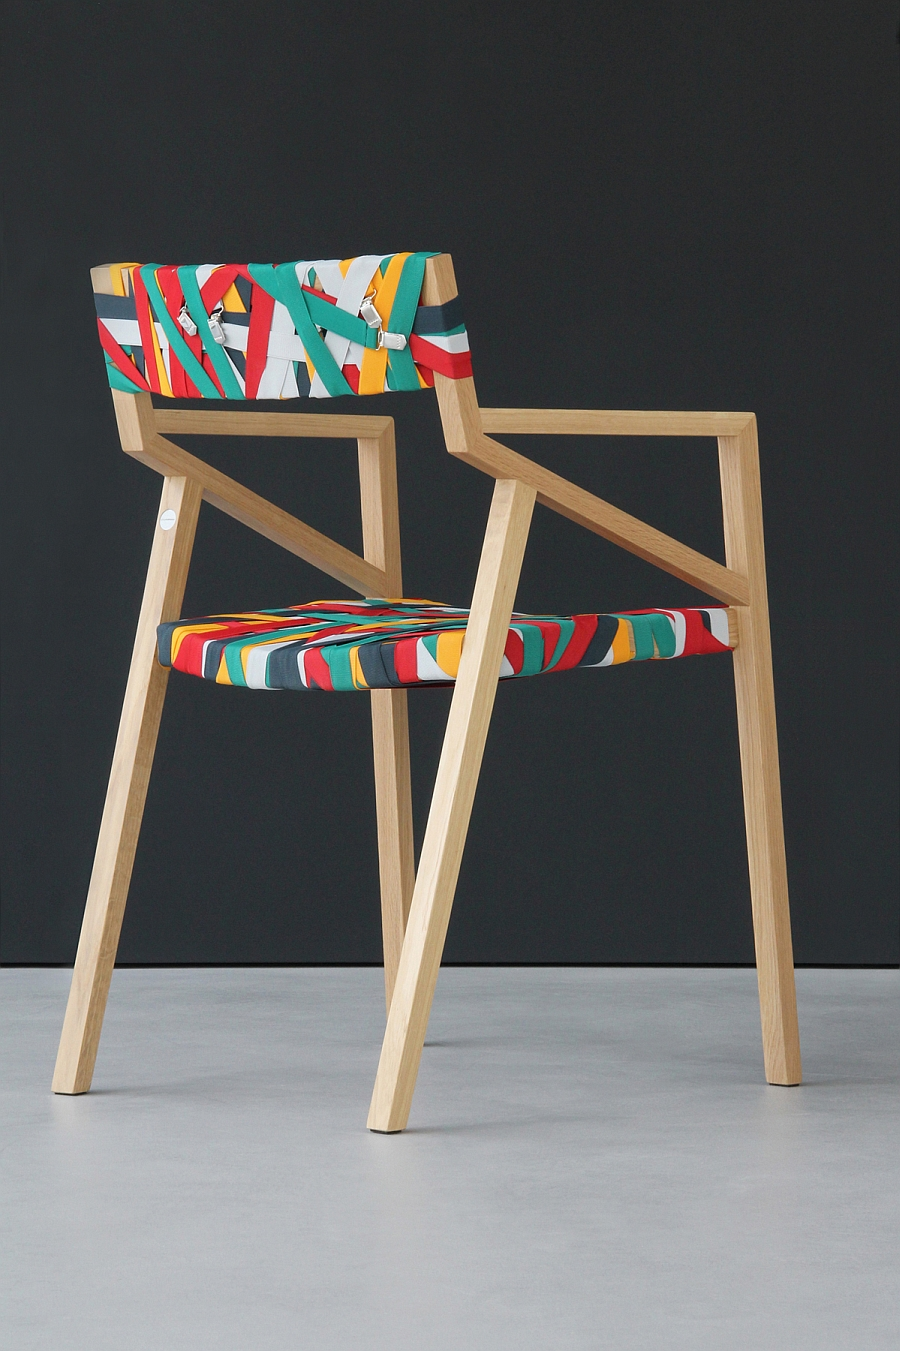 Trendy Minimalist Wood Chair Wrapped In Multicolored